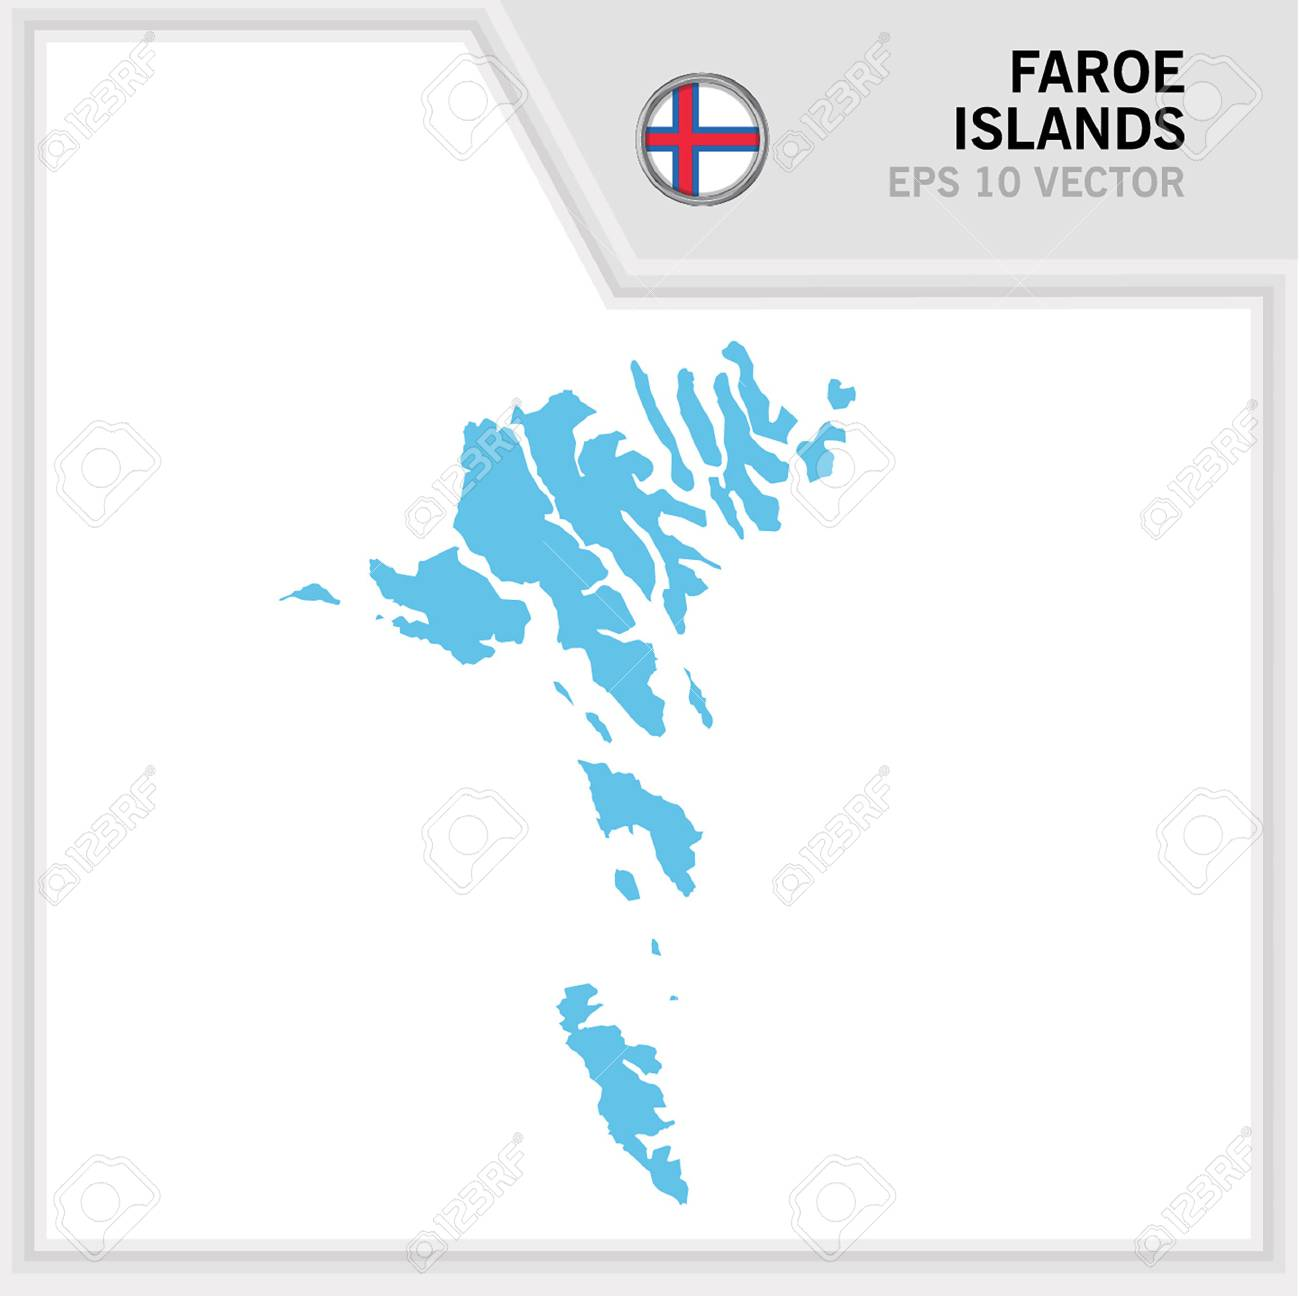 Faroe Islands map and flag in white background